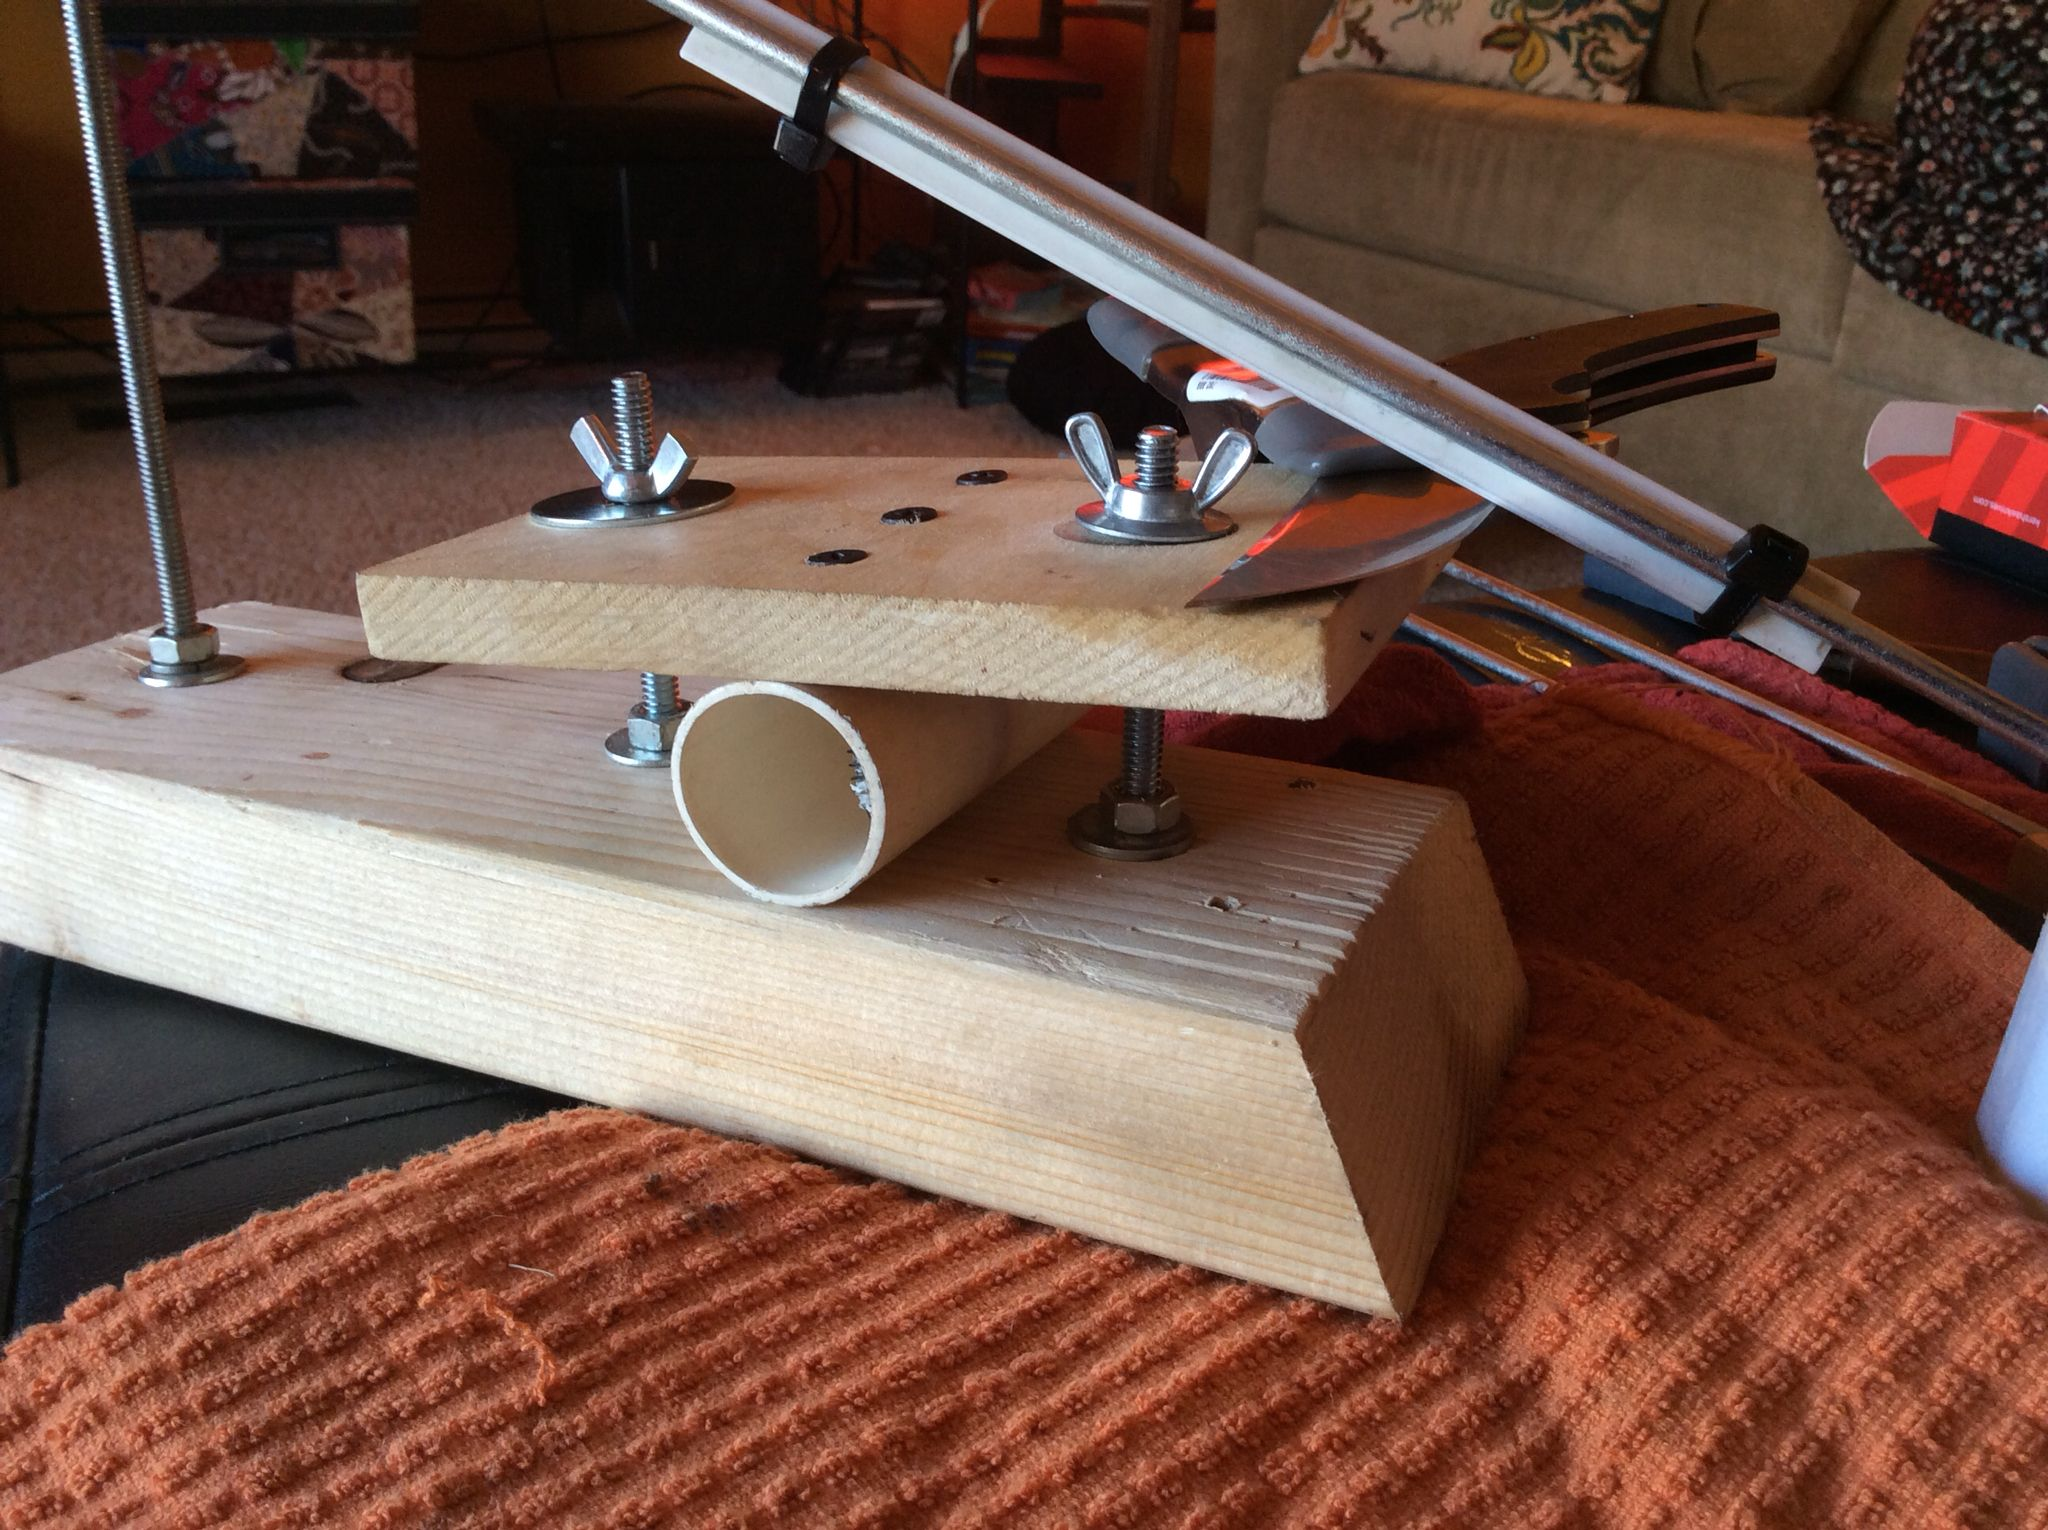 diy knife sharpening jig made from spare wood existing stones twist ties